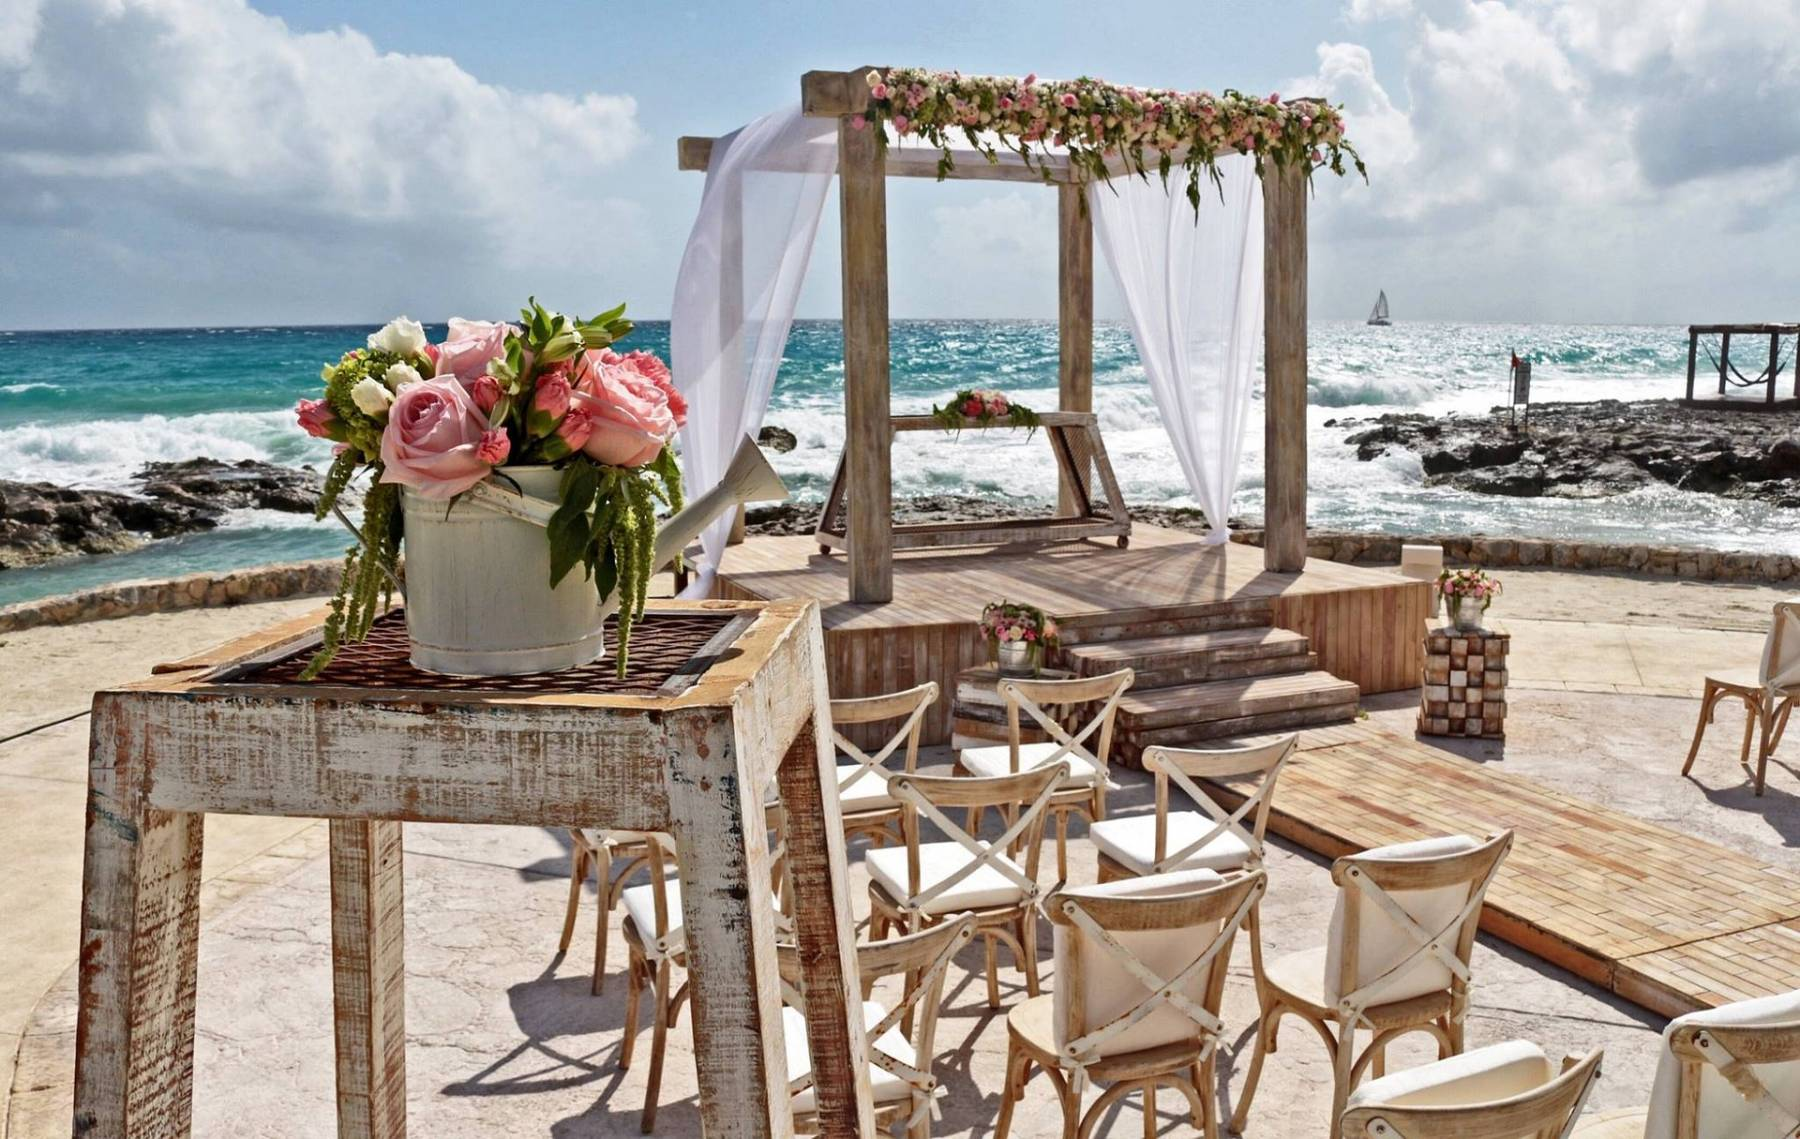 Affordable Daytona Beach Weddings: Daytona Beach Wedding Venues: Why Choose The Beach